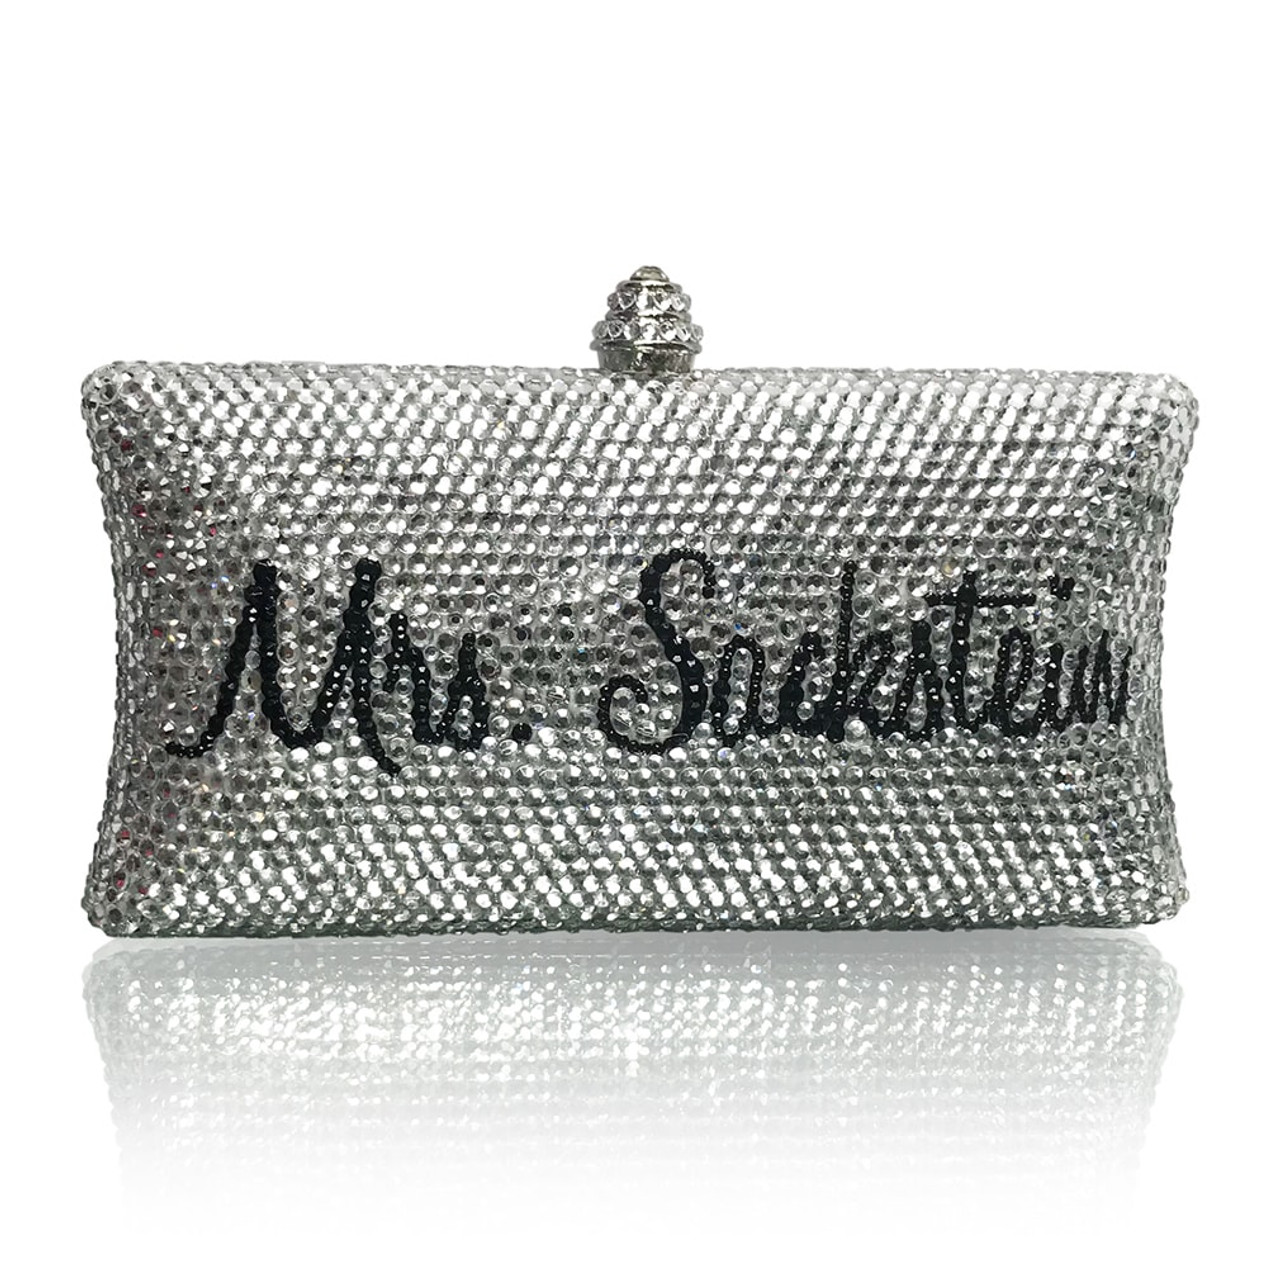 Personalized Cursive Font Large Clutch (iPhone Plus friendly)